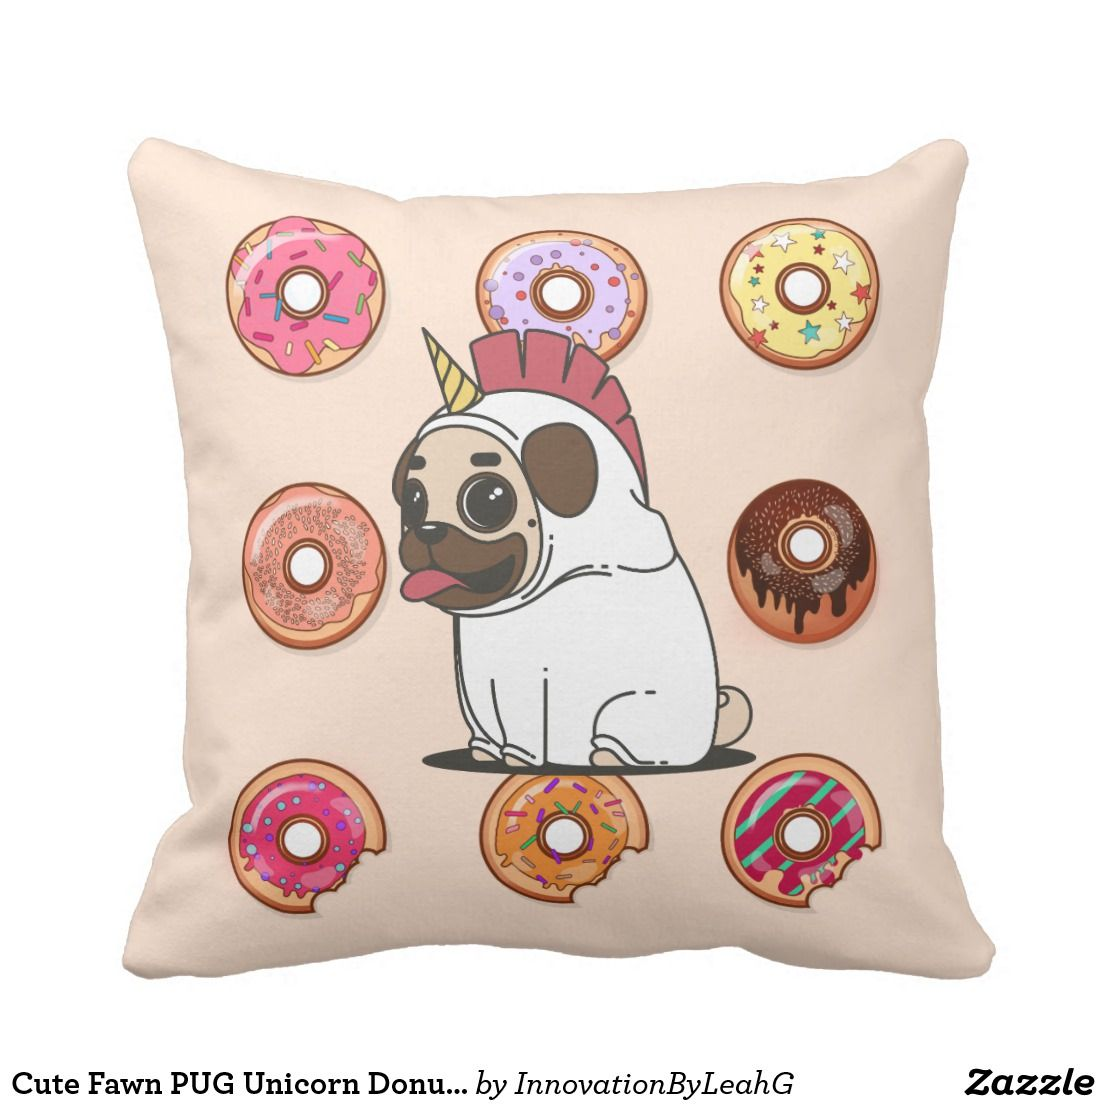 Cute fawn pug dressed as a unicorn eating donuts throw pillow